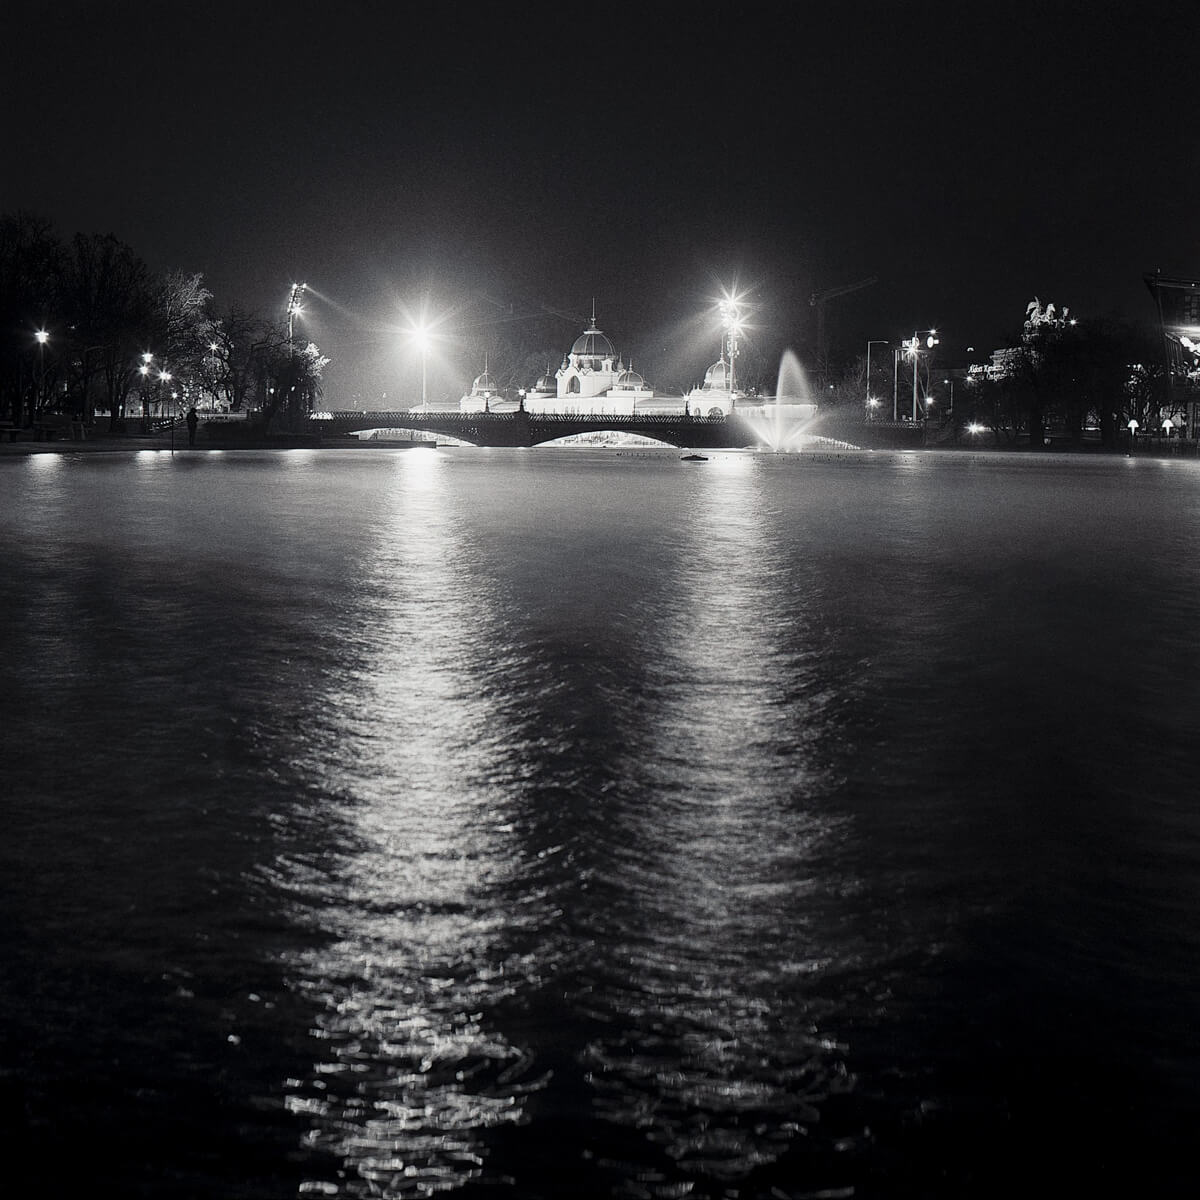 Pond at night - Pentacon Six with Carl Zeiss Jena 80mm f/2.8 Biometar, Kodak T-MAX 400 in CineStill Df96.